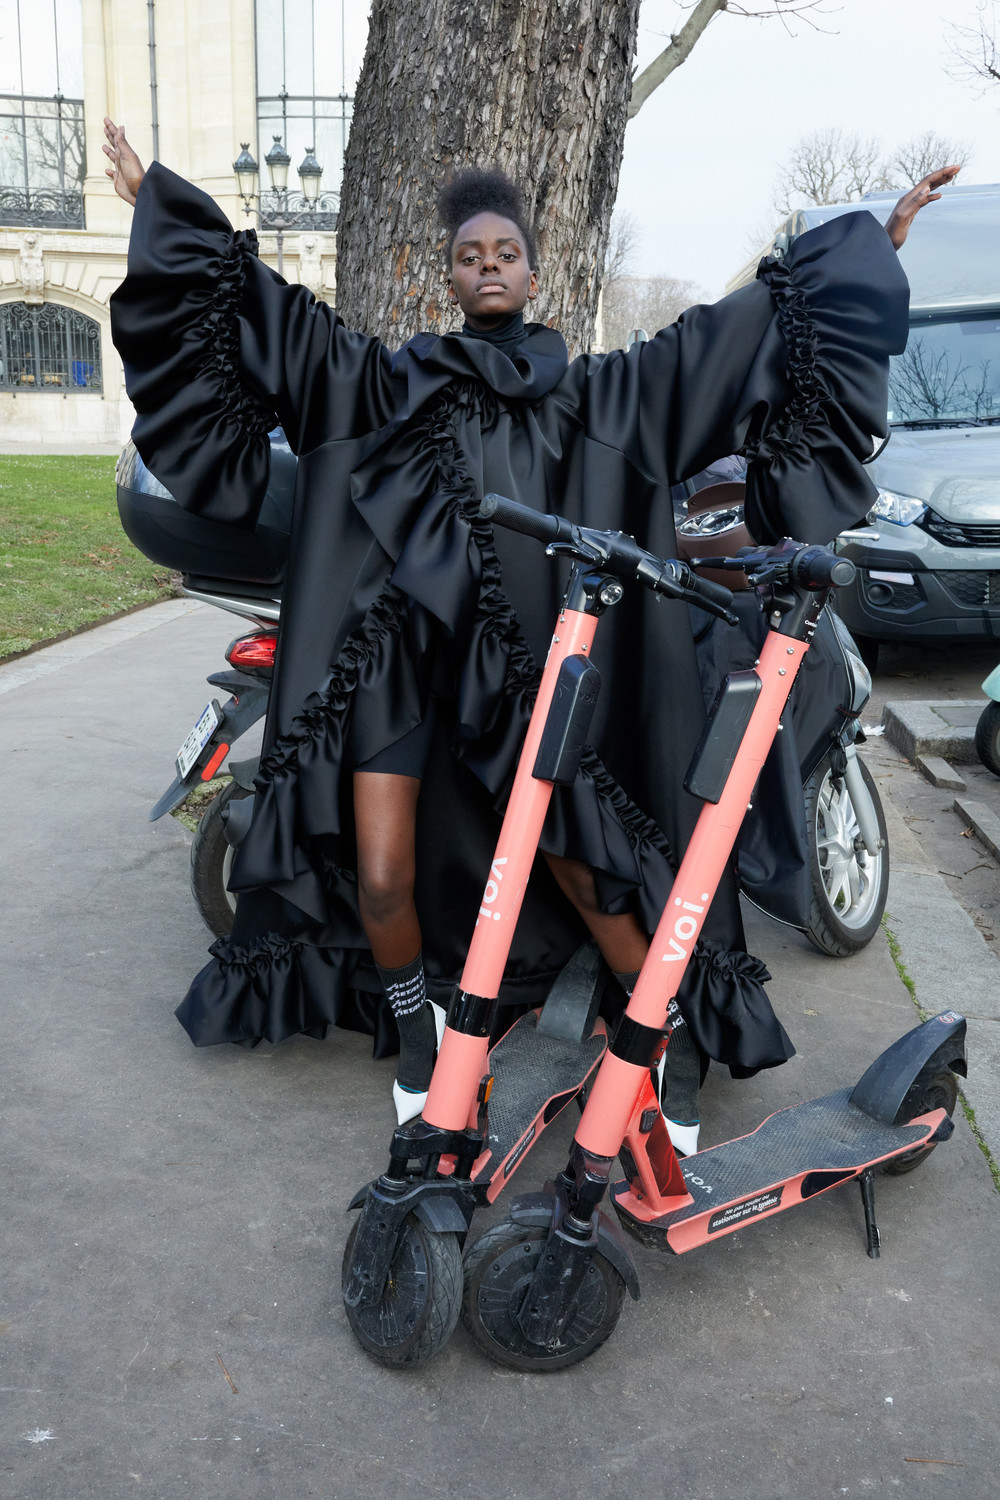 M, SS20 Fashion Issue - © KITTEN